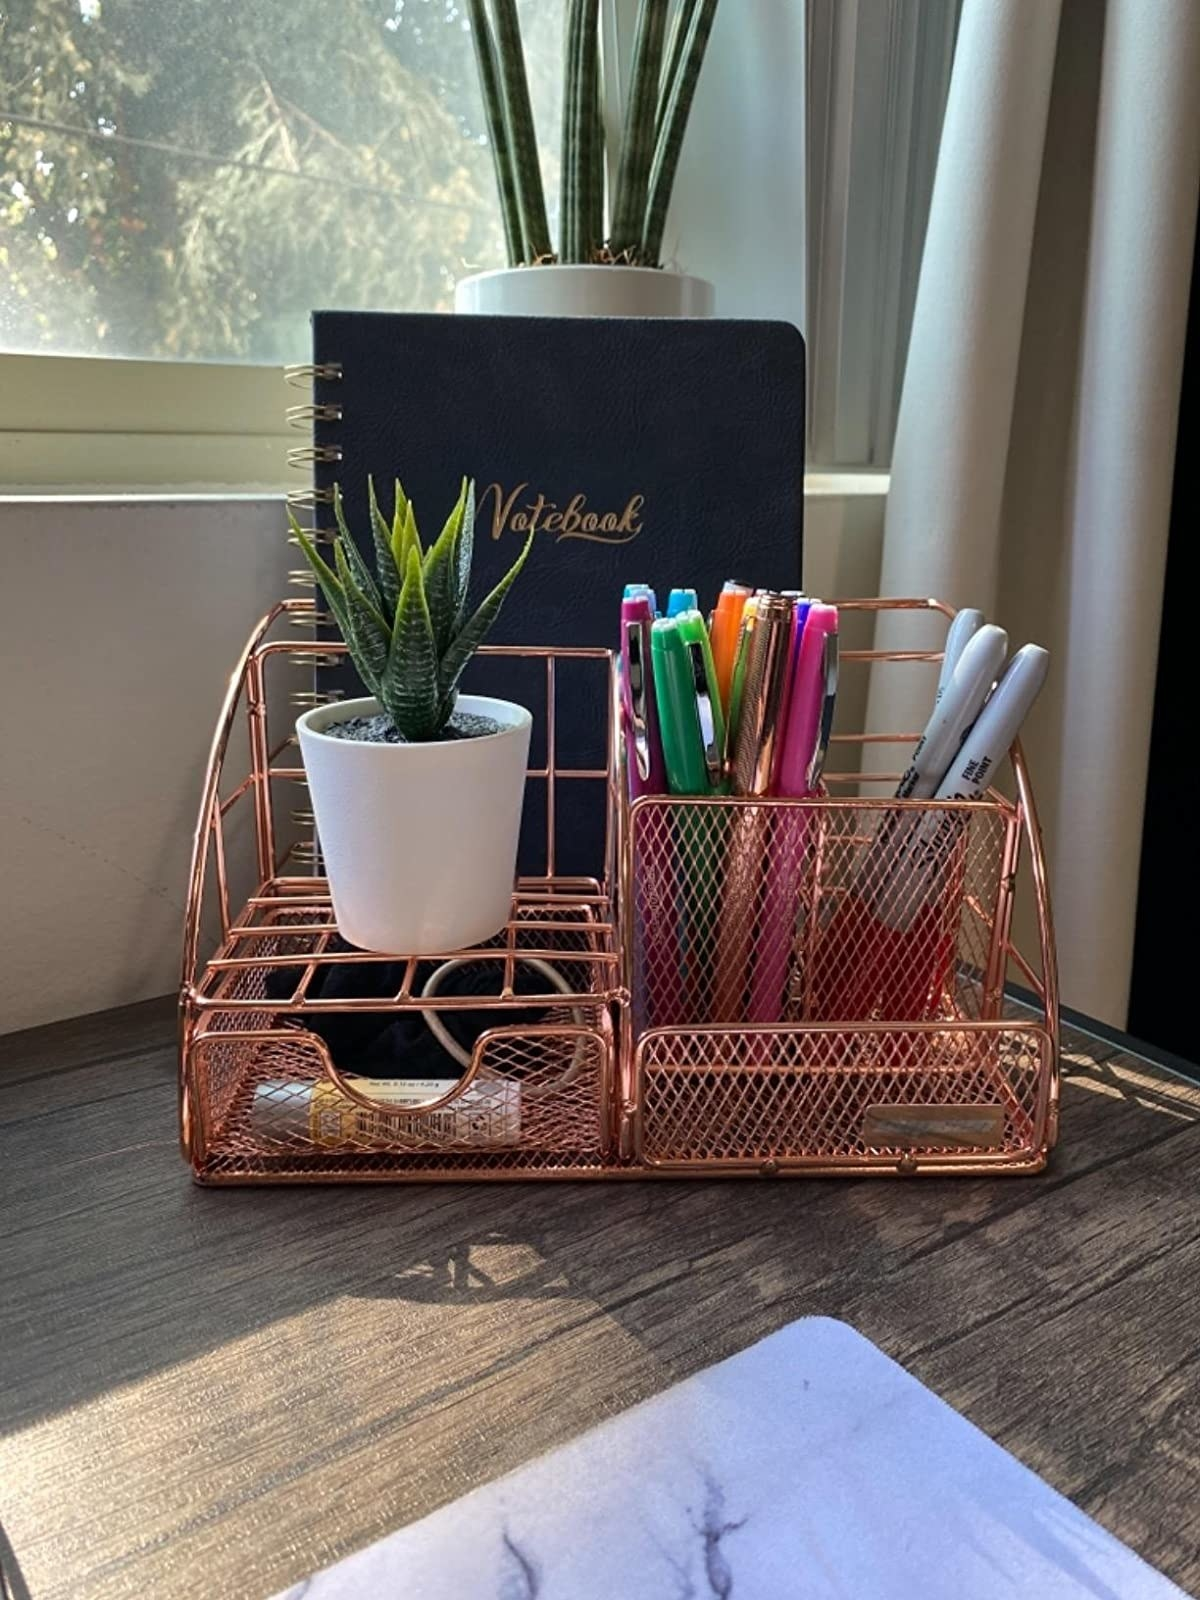 reviewer image of the rose gold desk organizer in the corner of a customer's desk holding a small succulent, pens, and a notebook